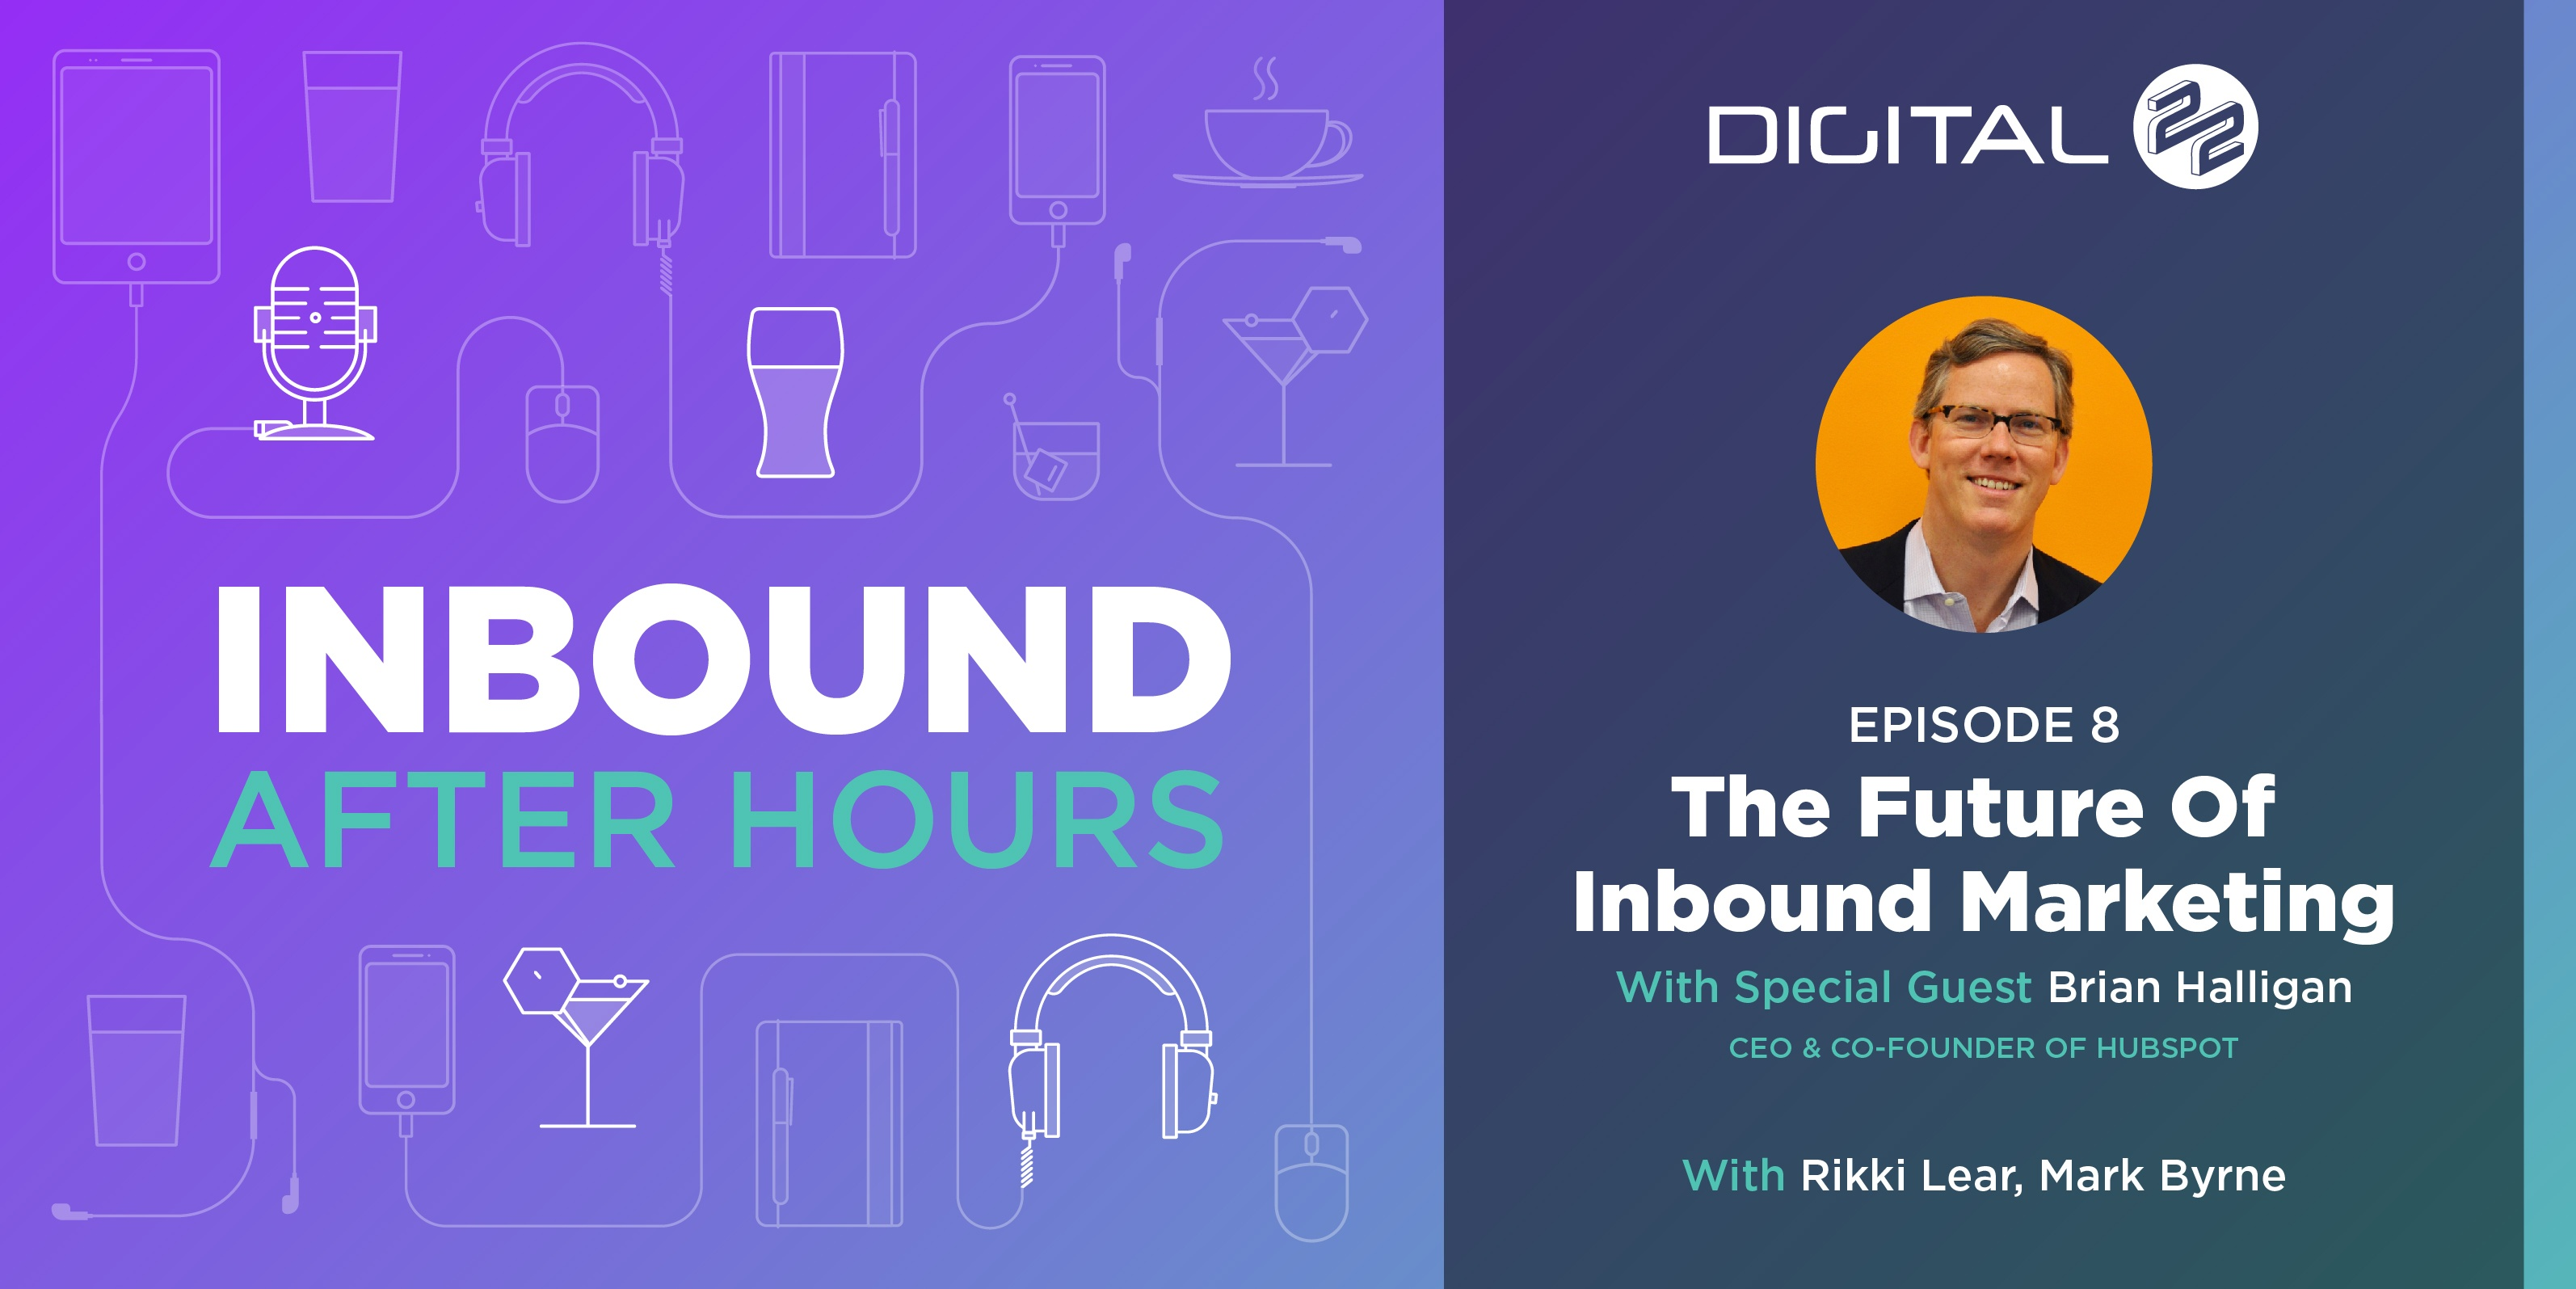 Digital 22_Inbound After Hours Banner - Episode 8_BP_v1.0.jpg